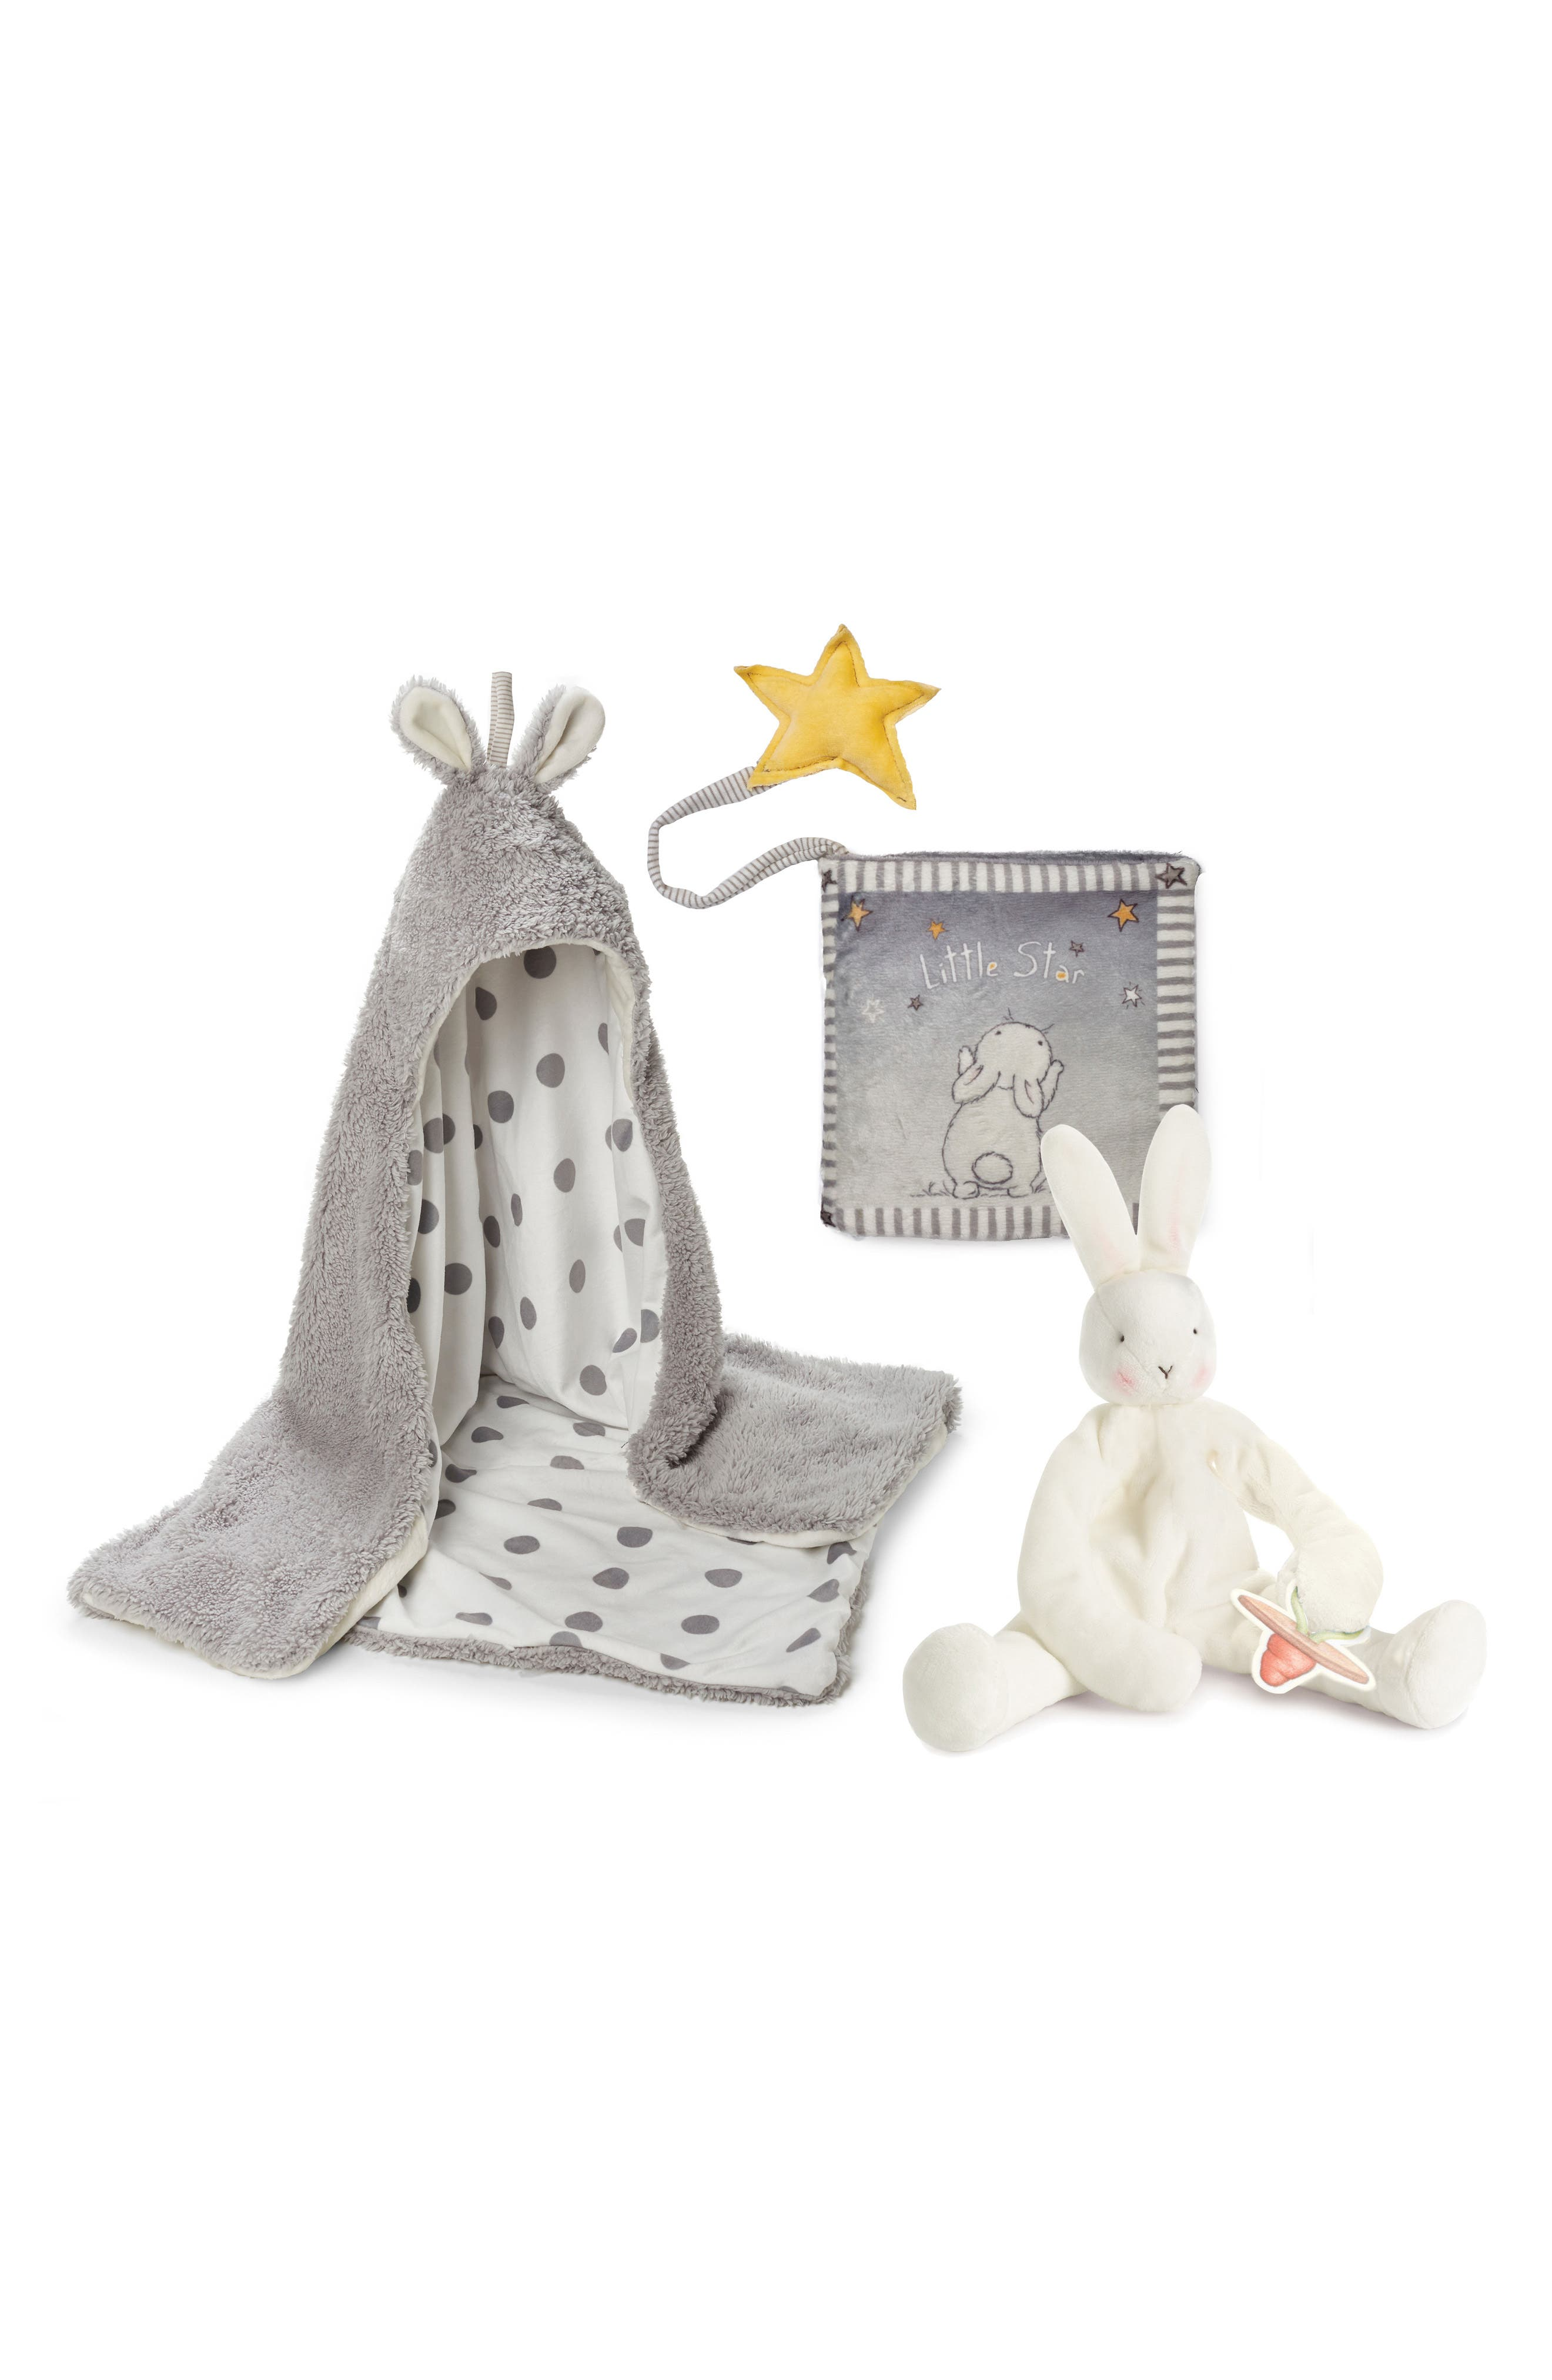 Storytime Hooded Blanket, Stuffed Animal & Book Set,                         Main,                         color, Glad Dreams Grey